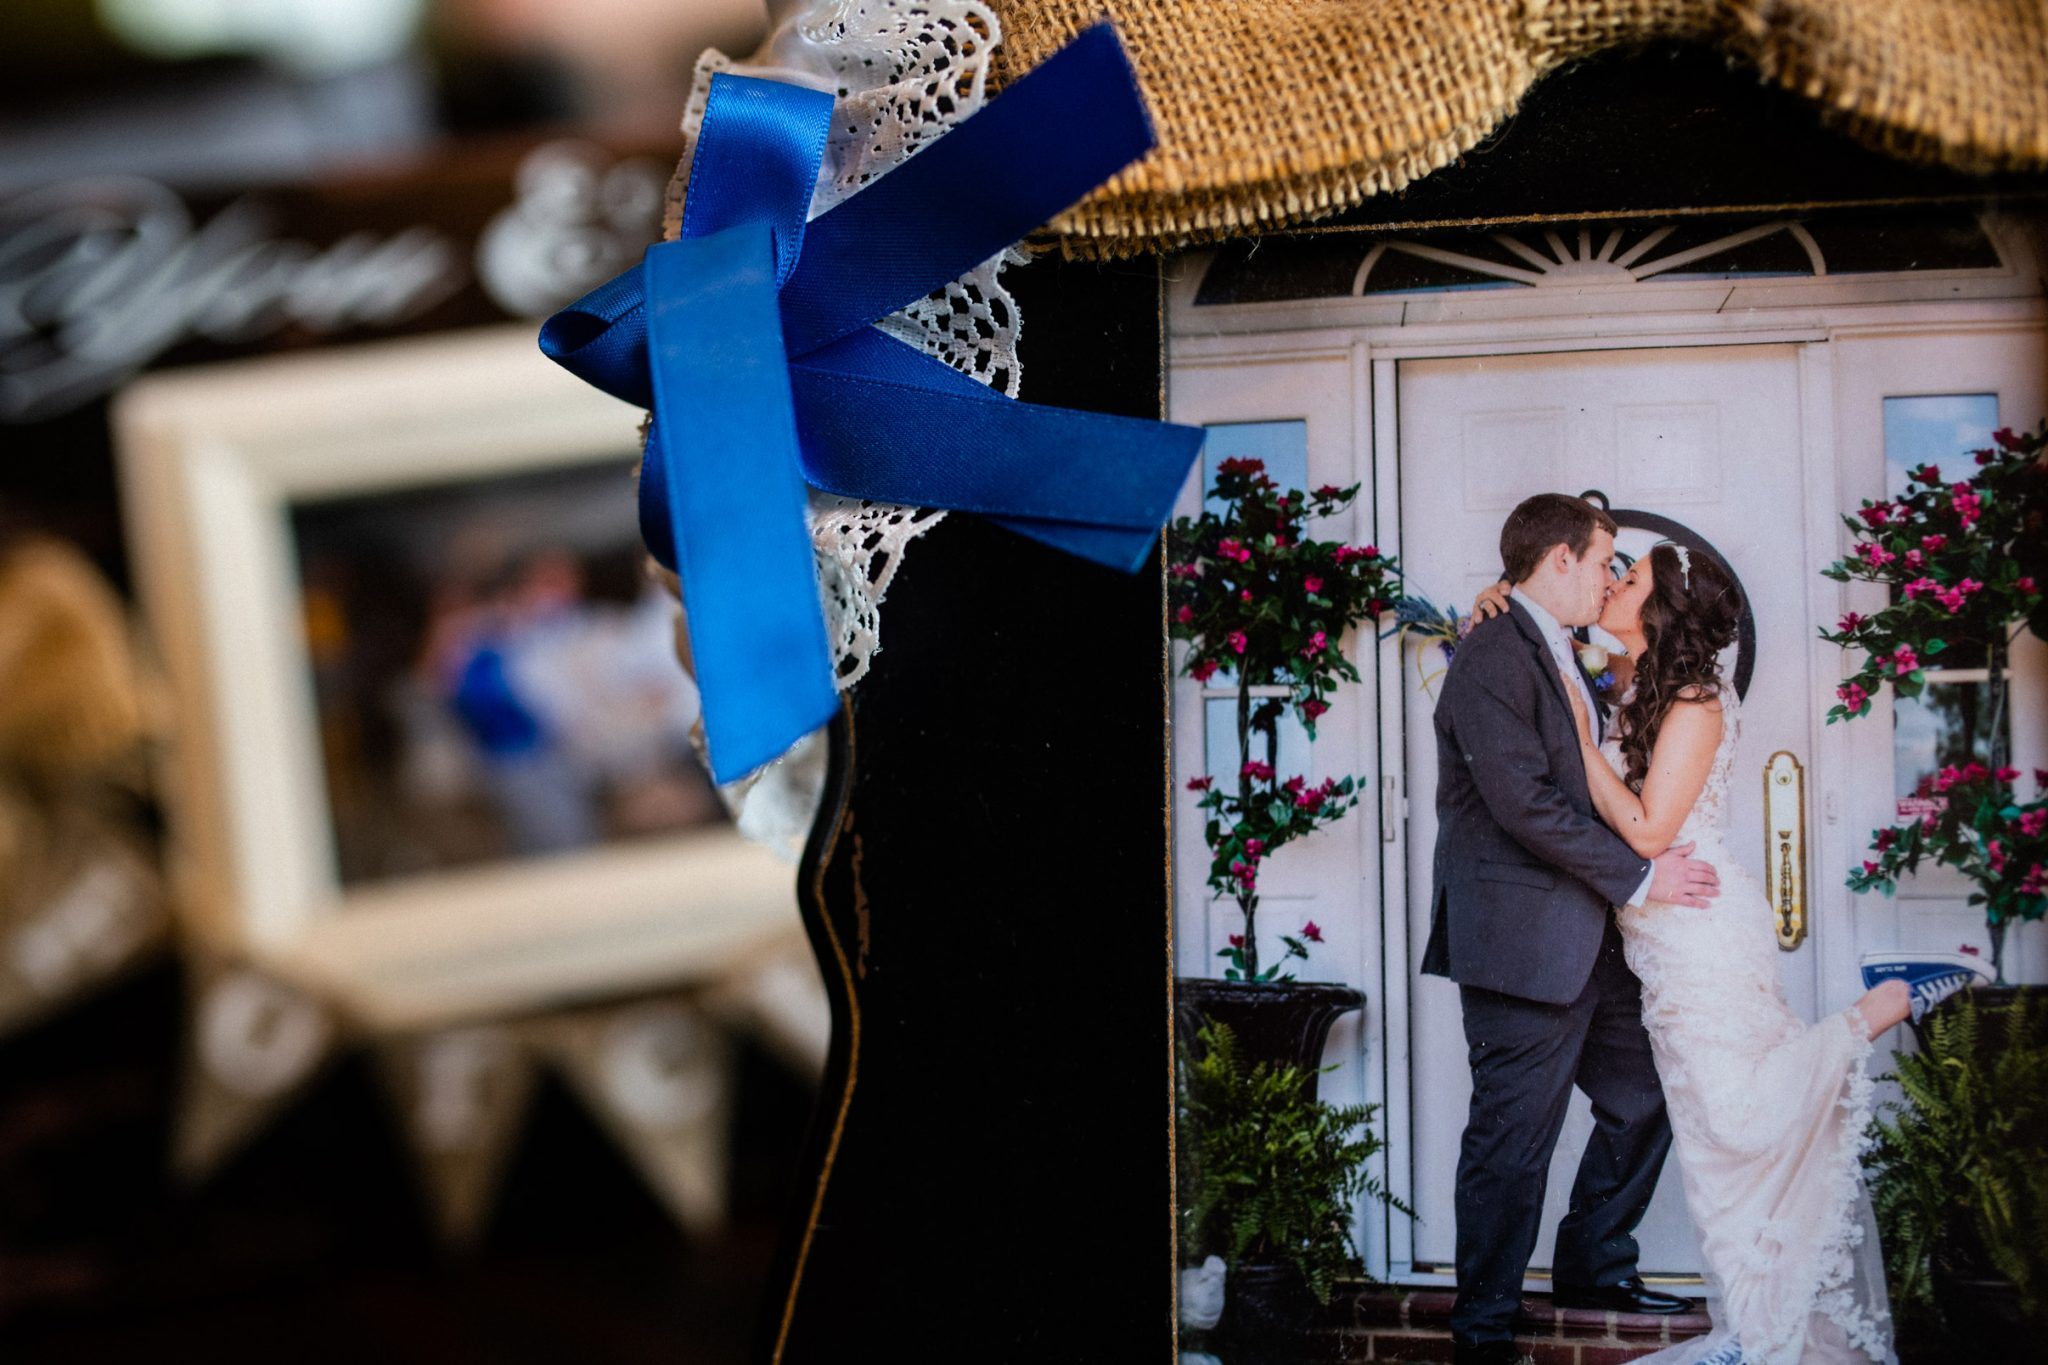 Close up of a framed wedding photograph of Caleb and Amelia kissing.